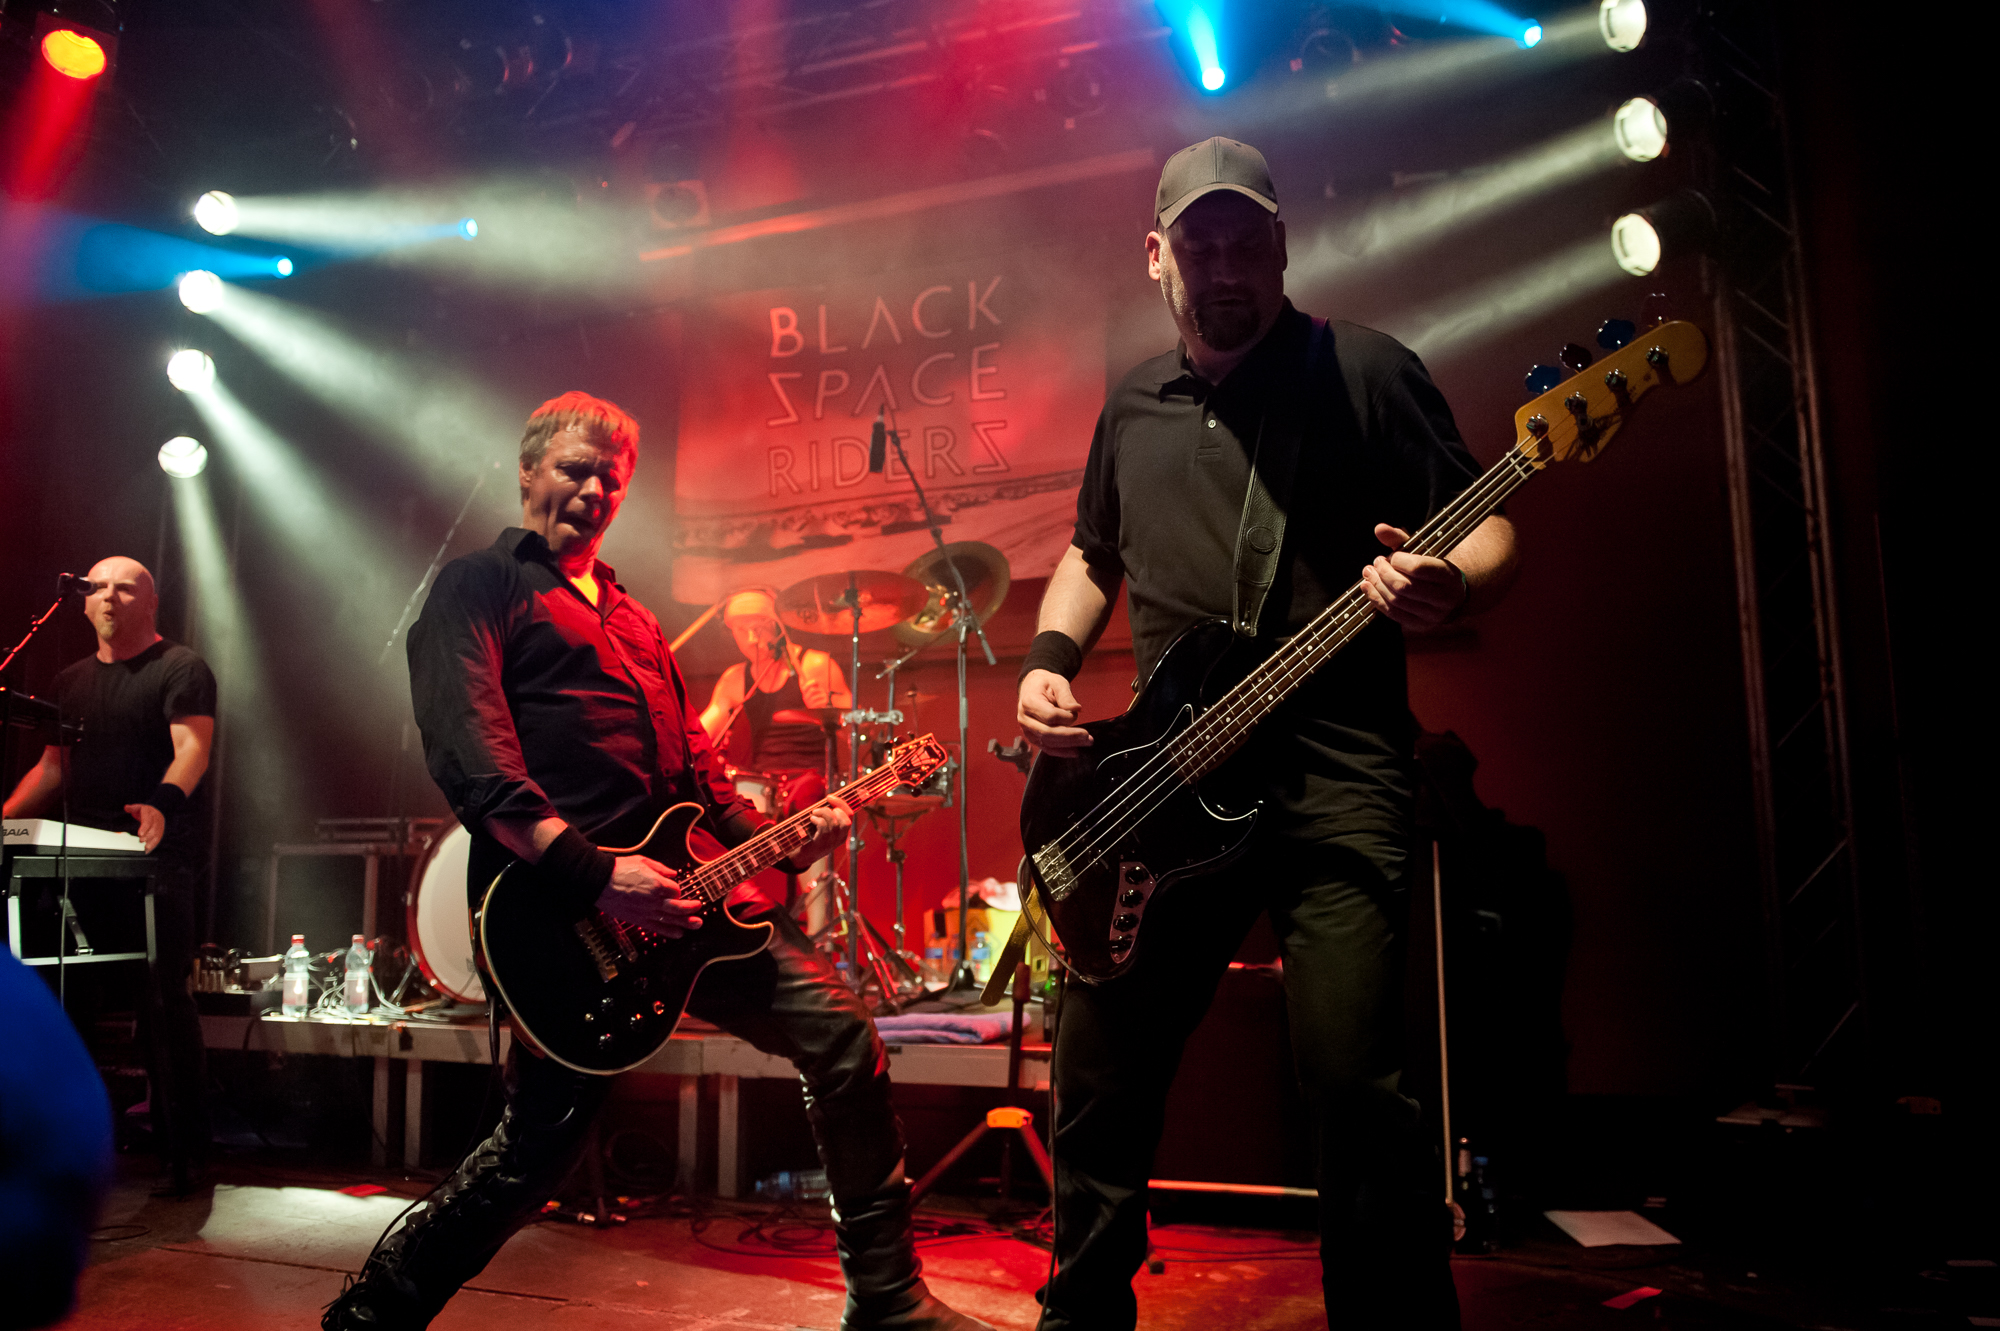 03_2016_05_20_Turock_Black Space Riders-9357